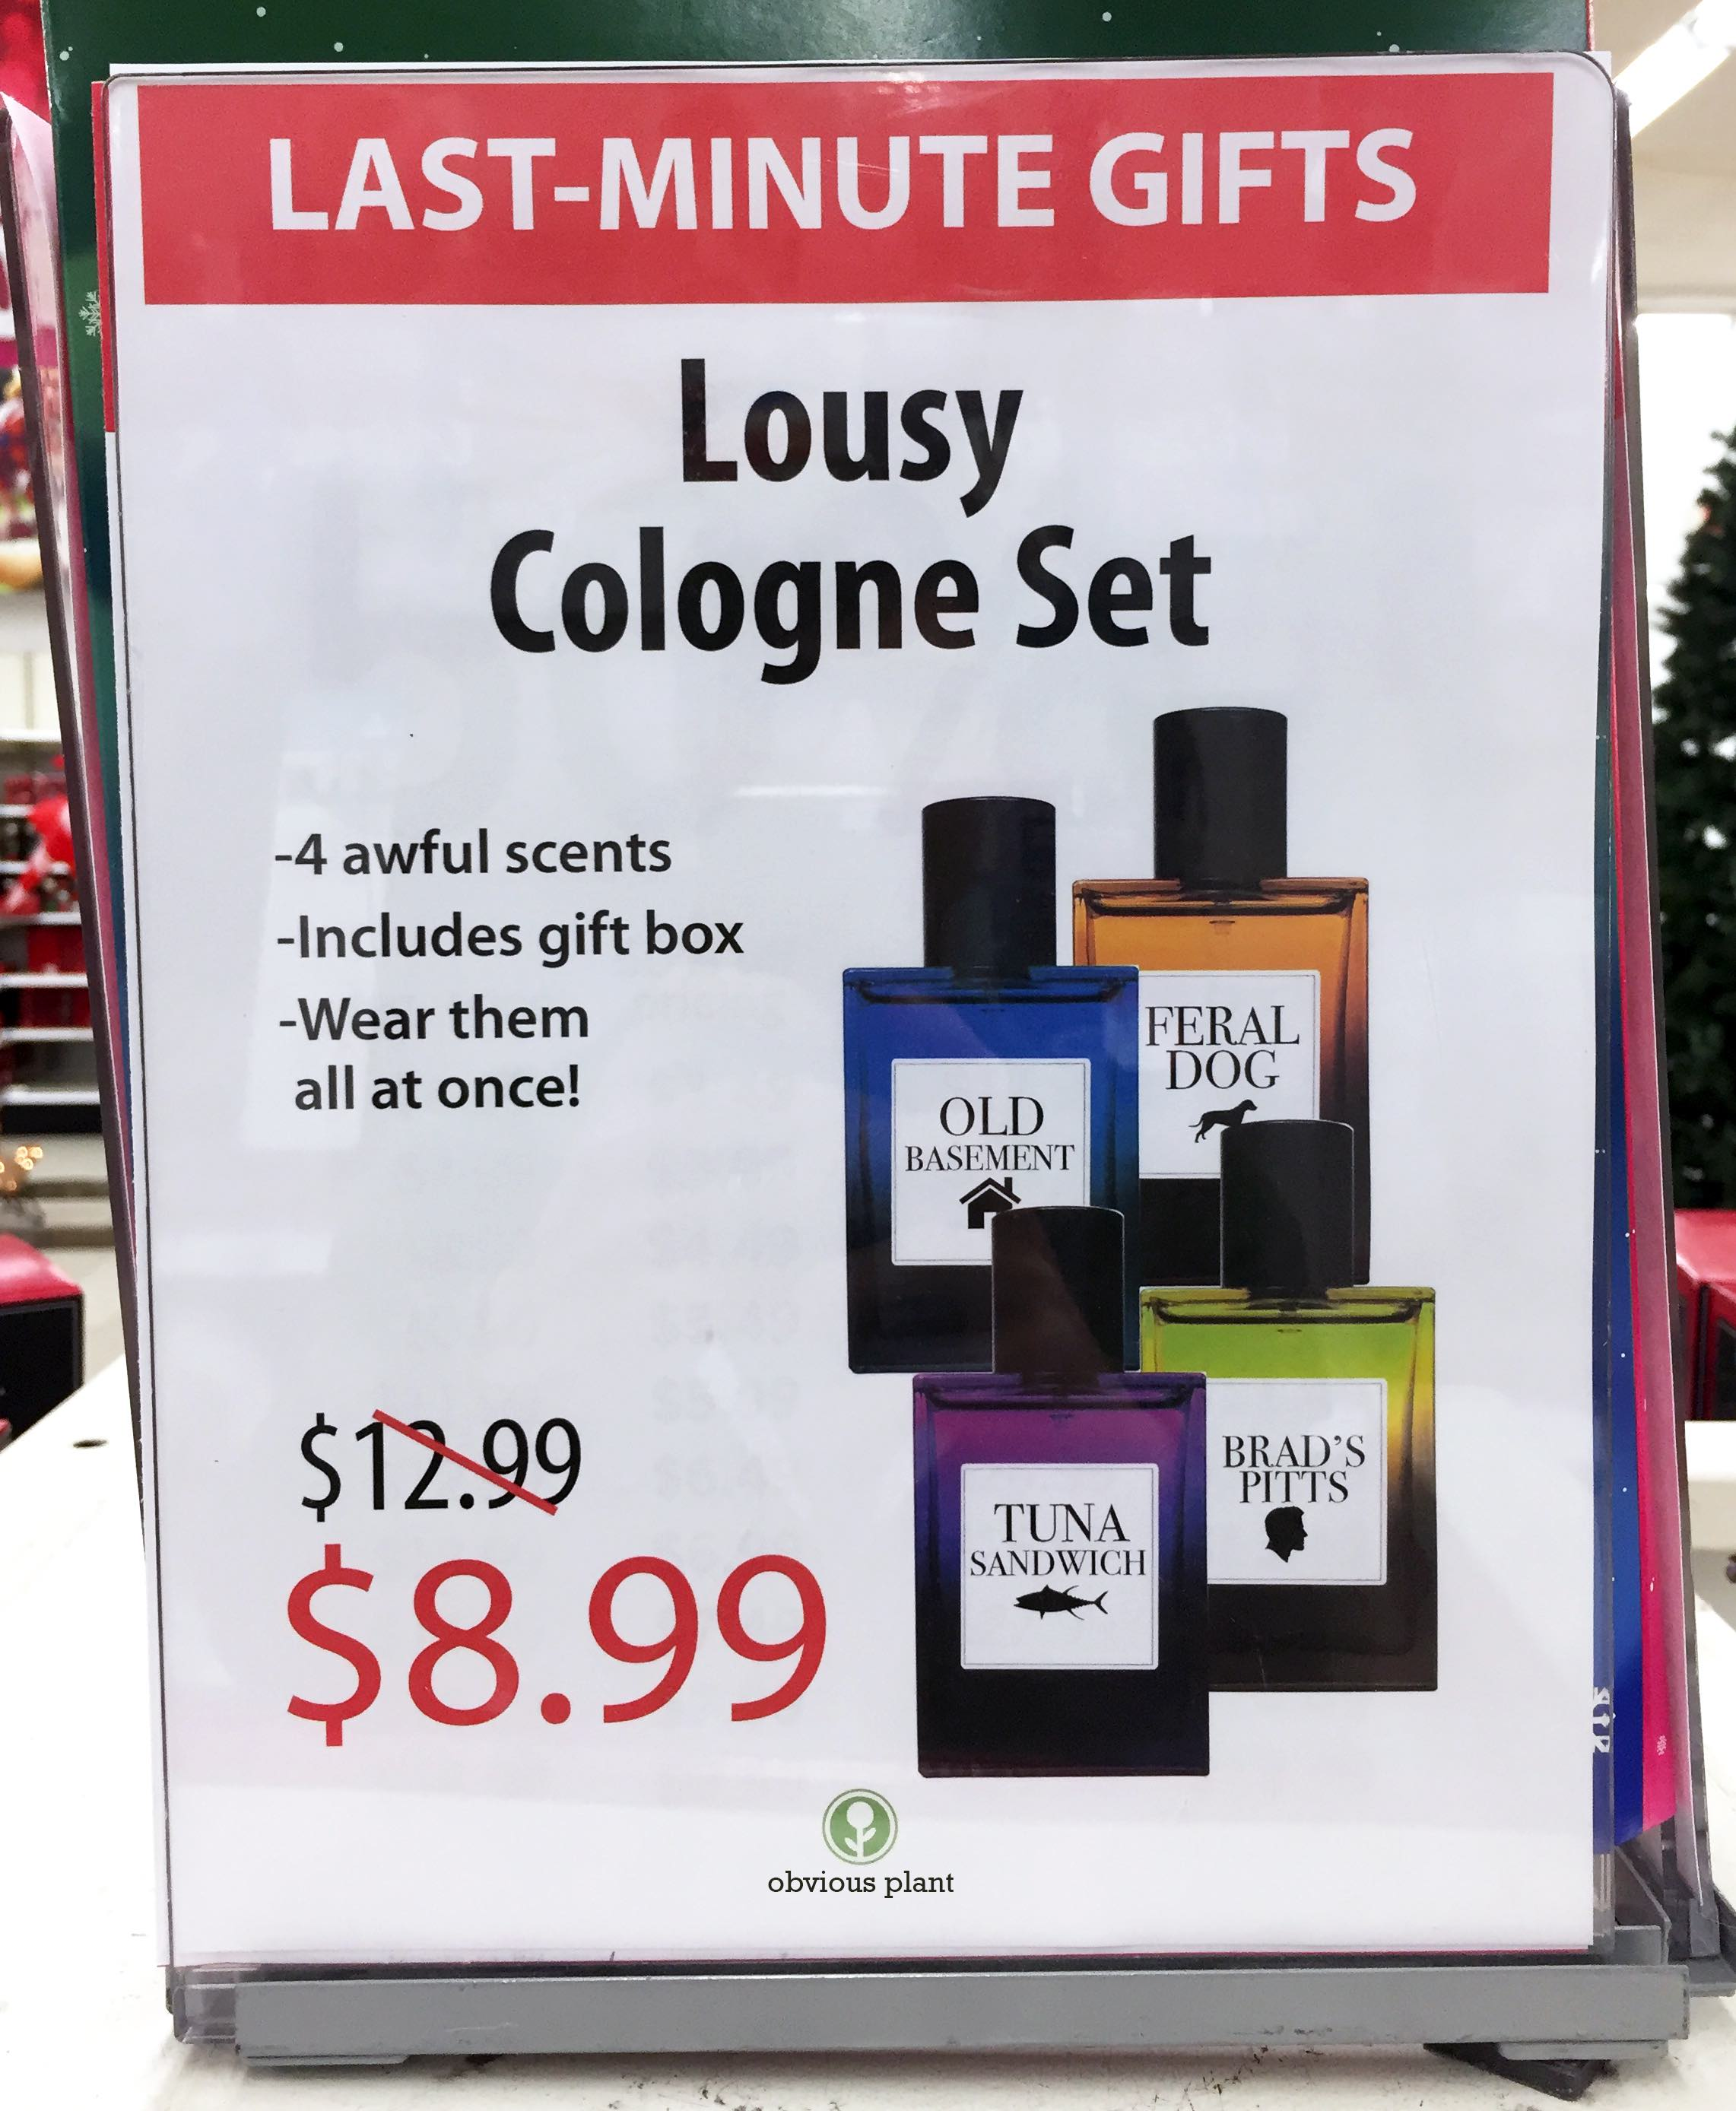 I Added Some Last-Minute Christmas Gift Options to My Local Kmart